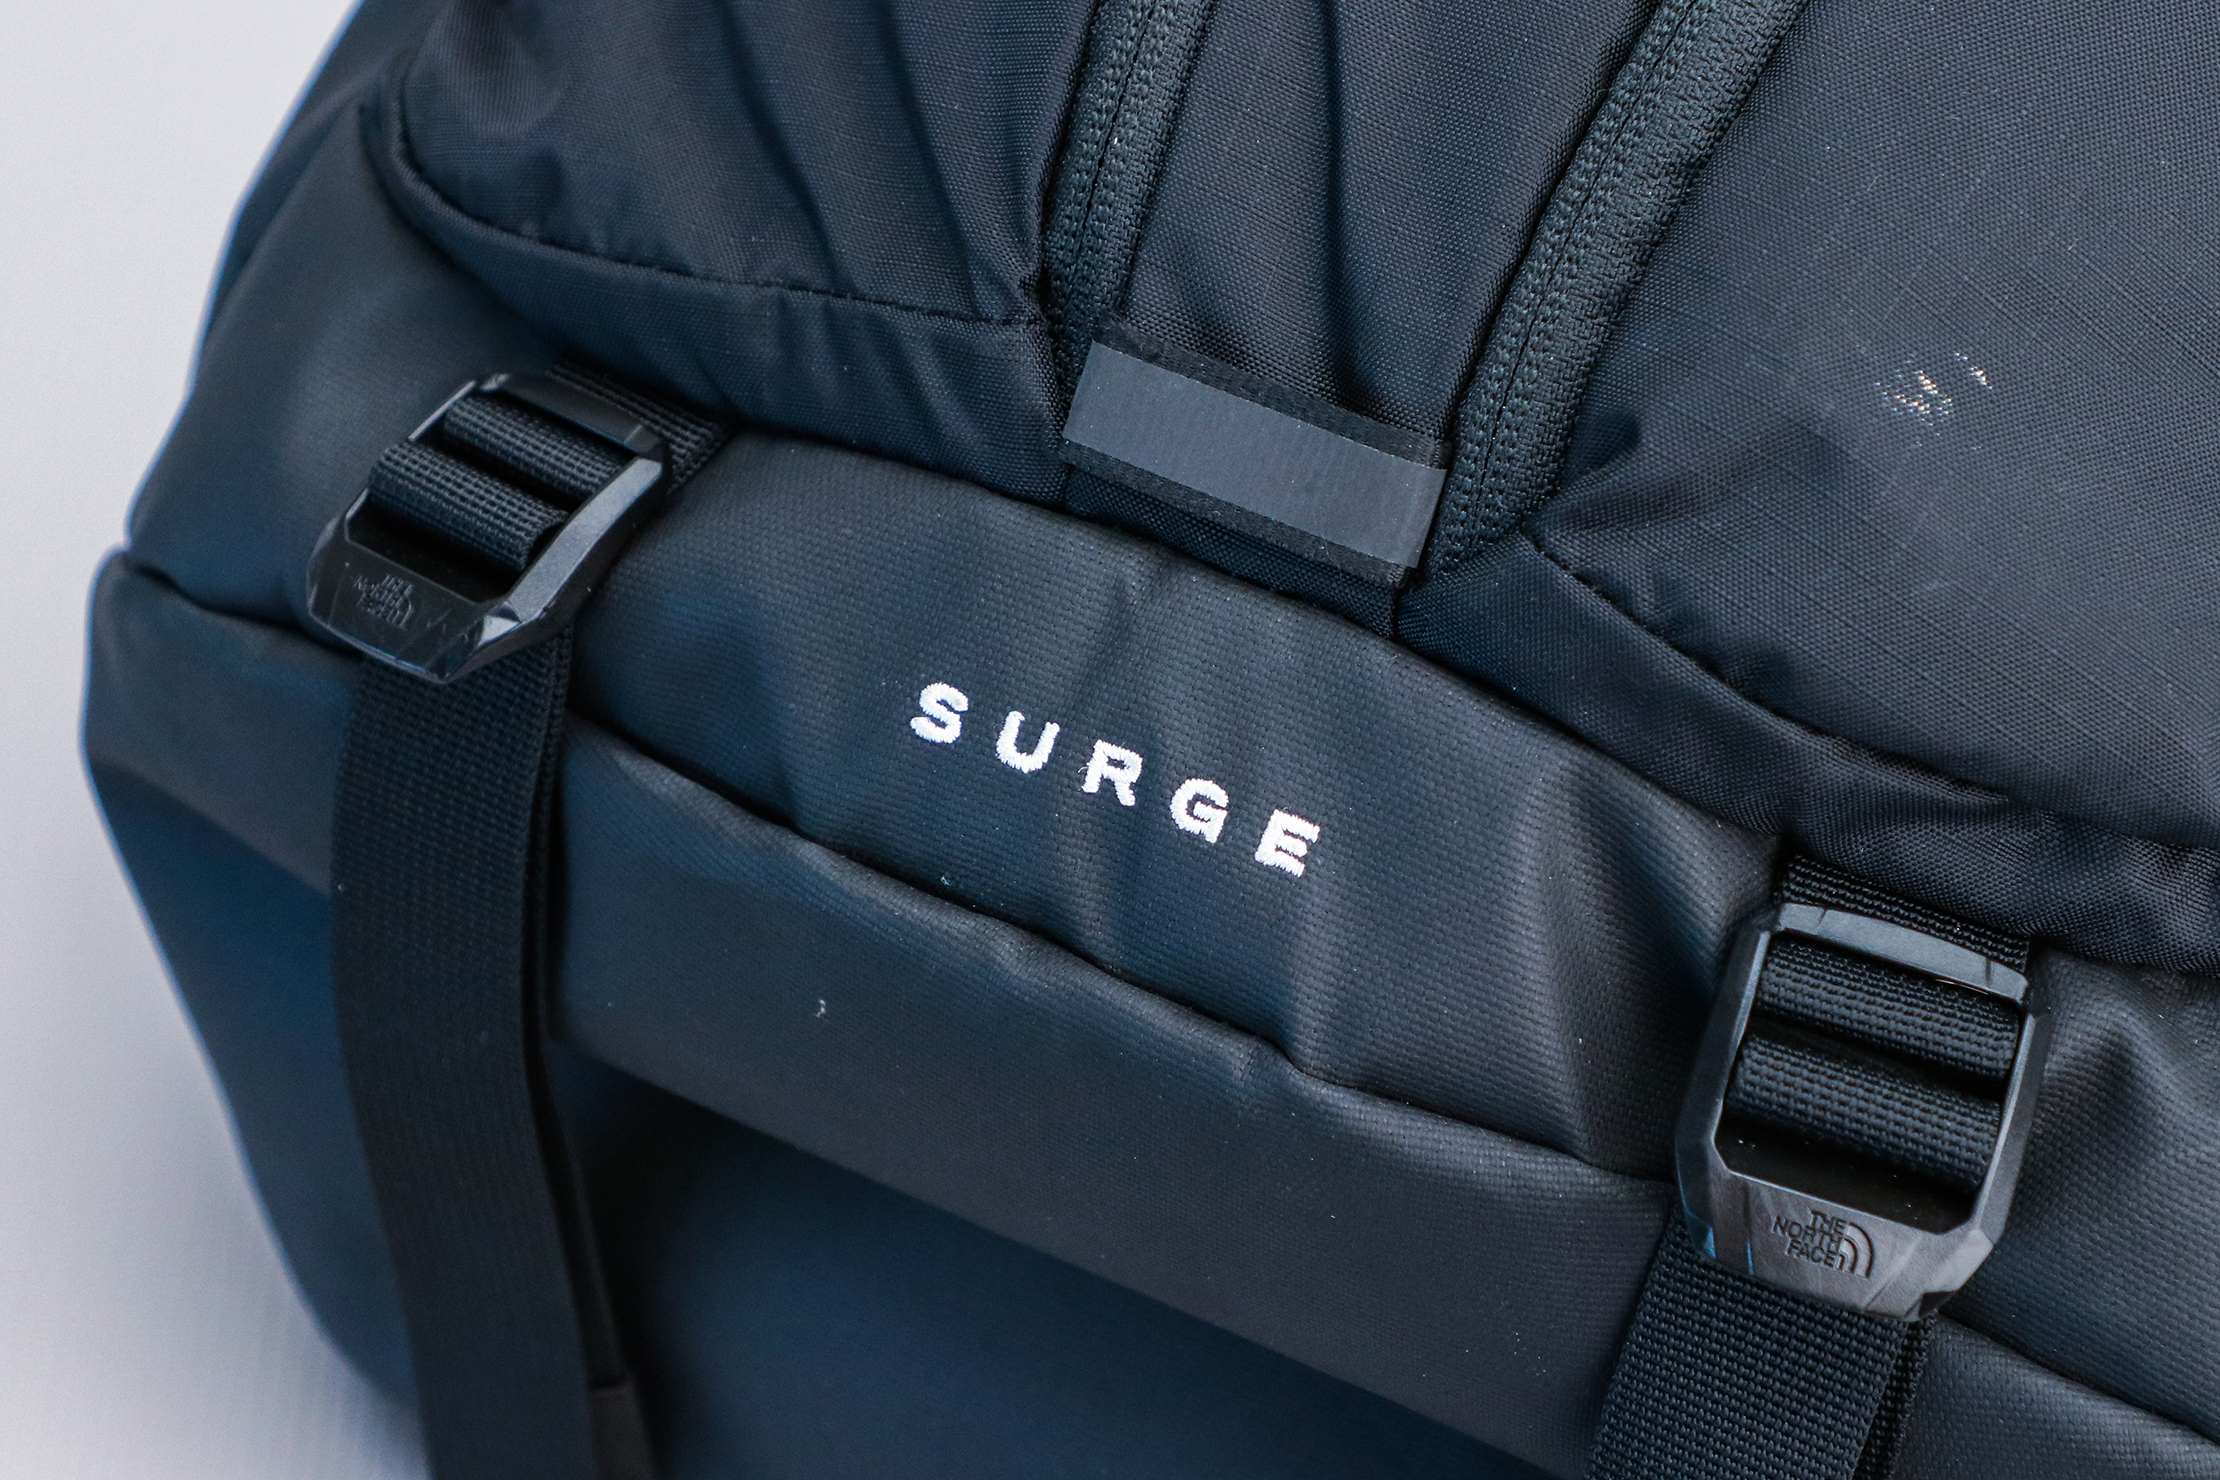 The North Face Surge Backpack logo